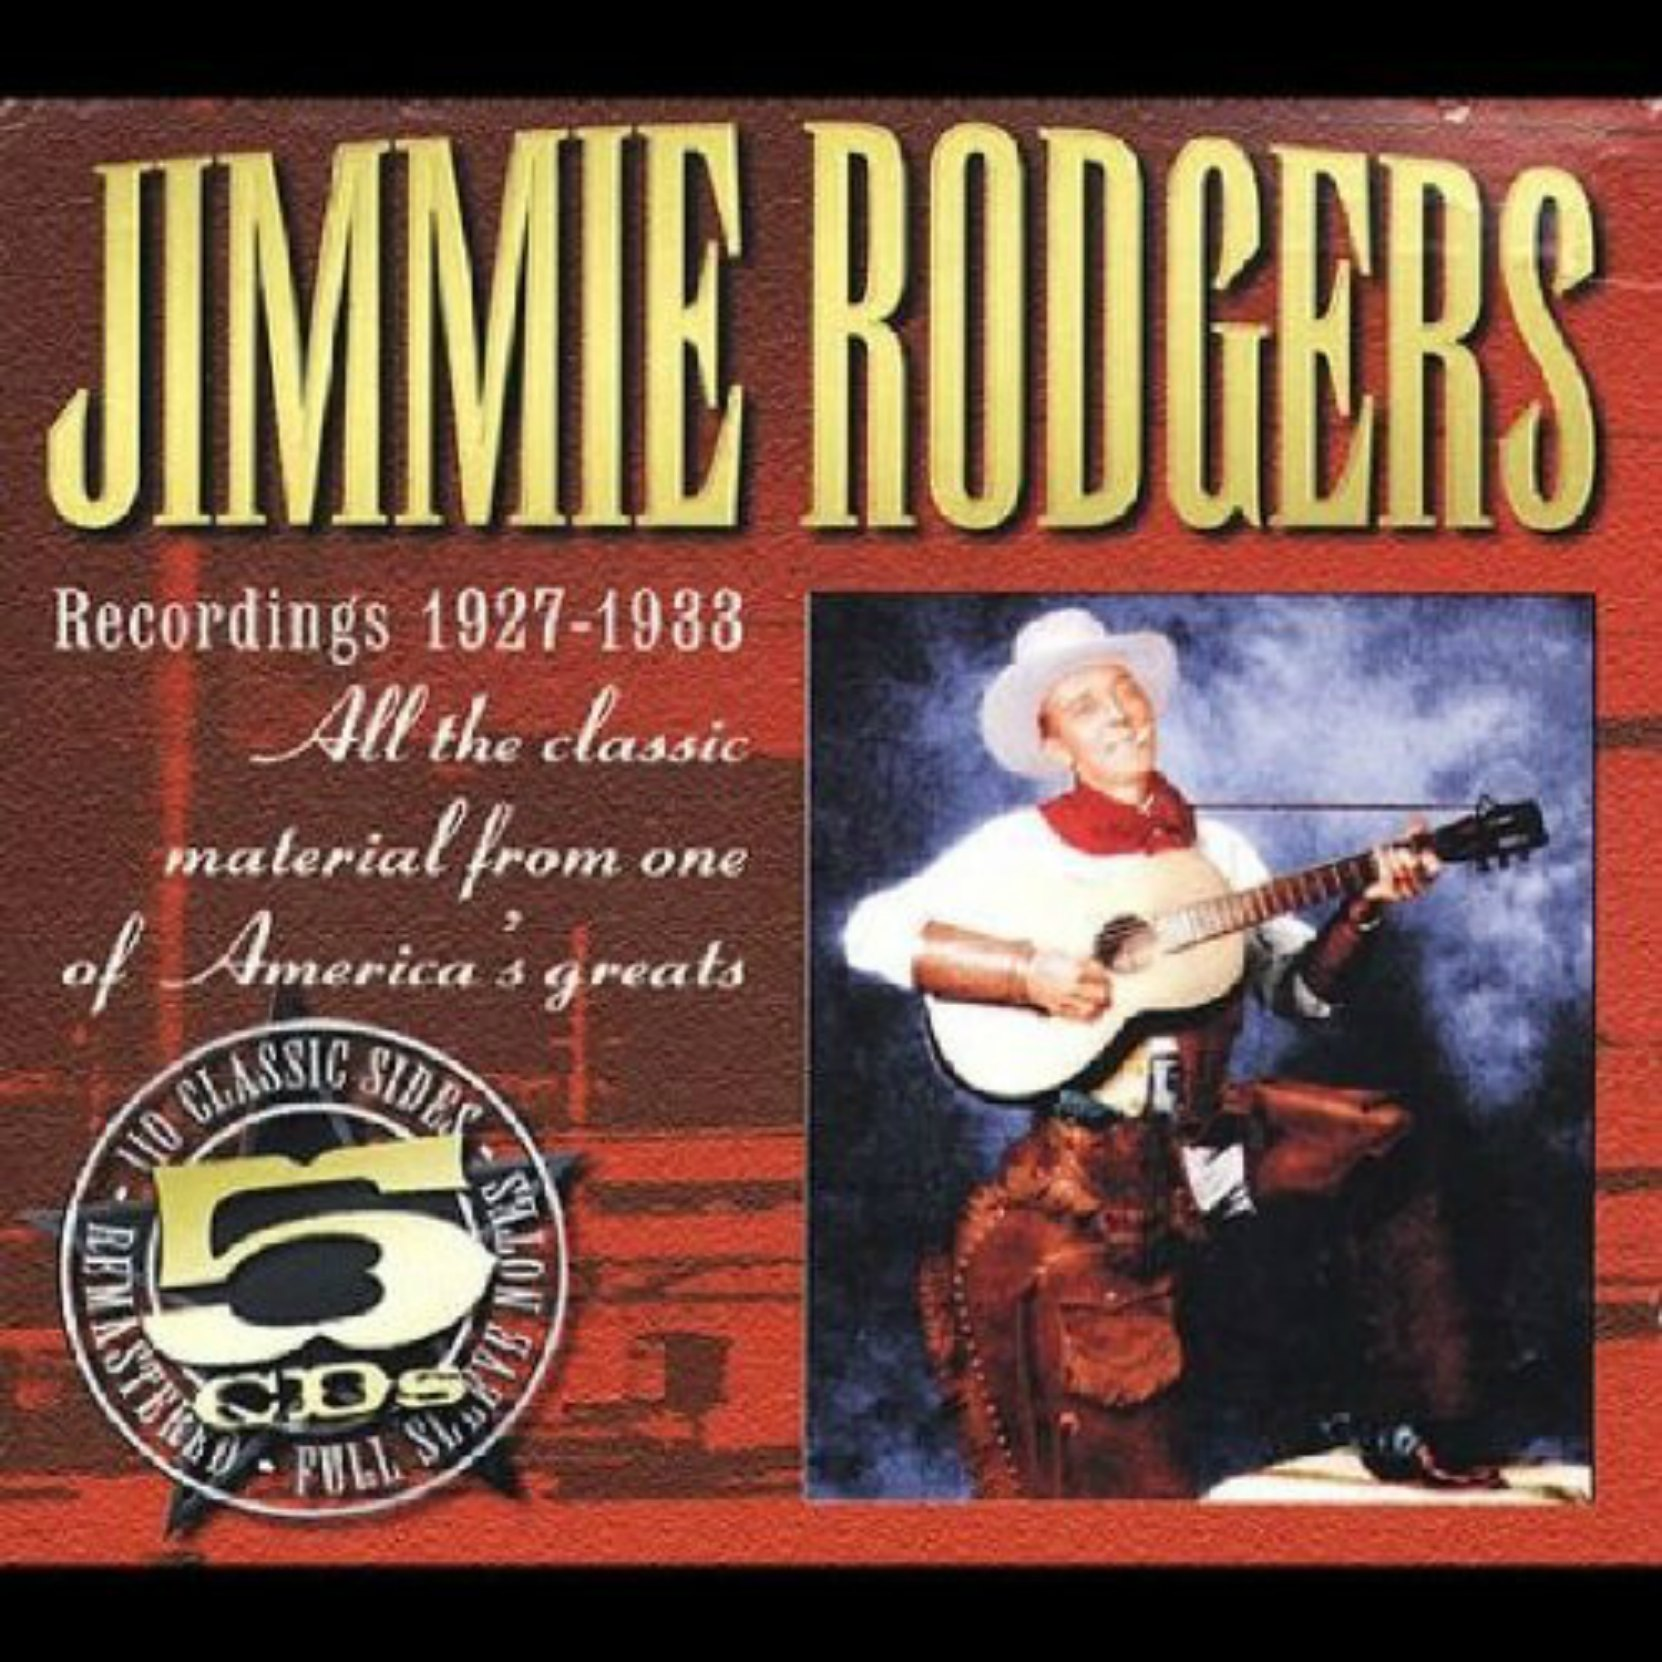 CD cover, Jimmie Rodgers Recordings 1927-1933, a 5 CD, 110 track, box set released on JSP Records